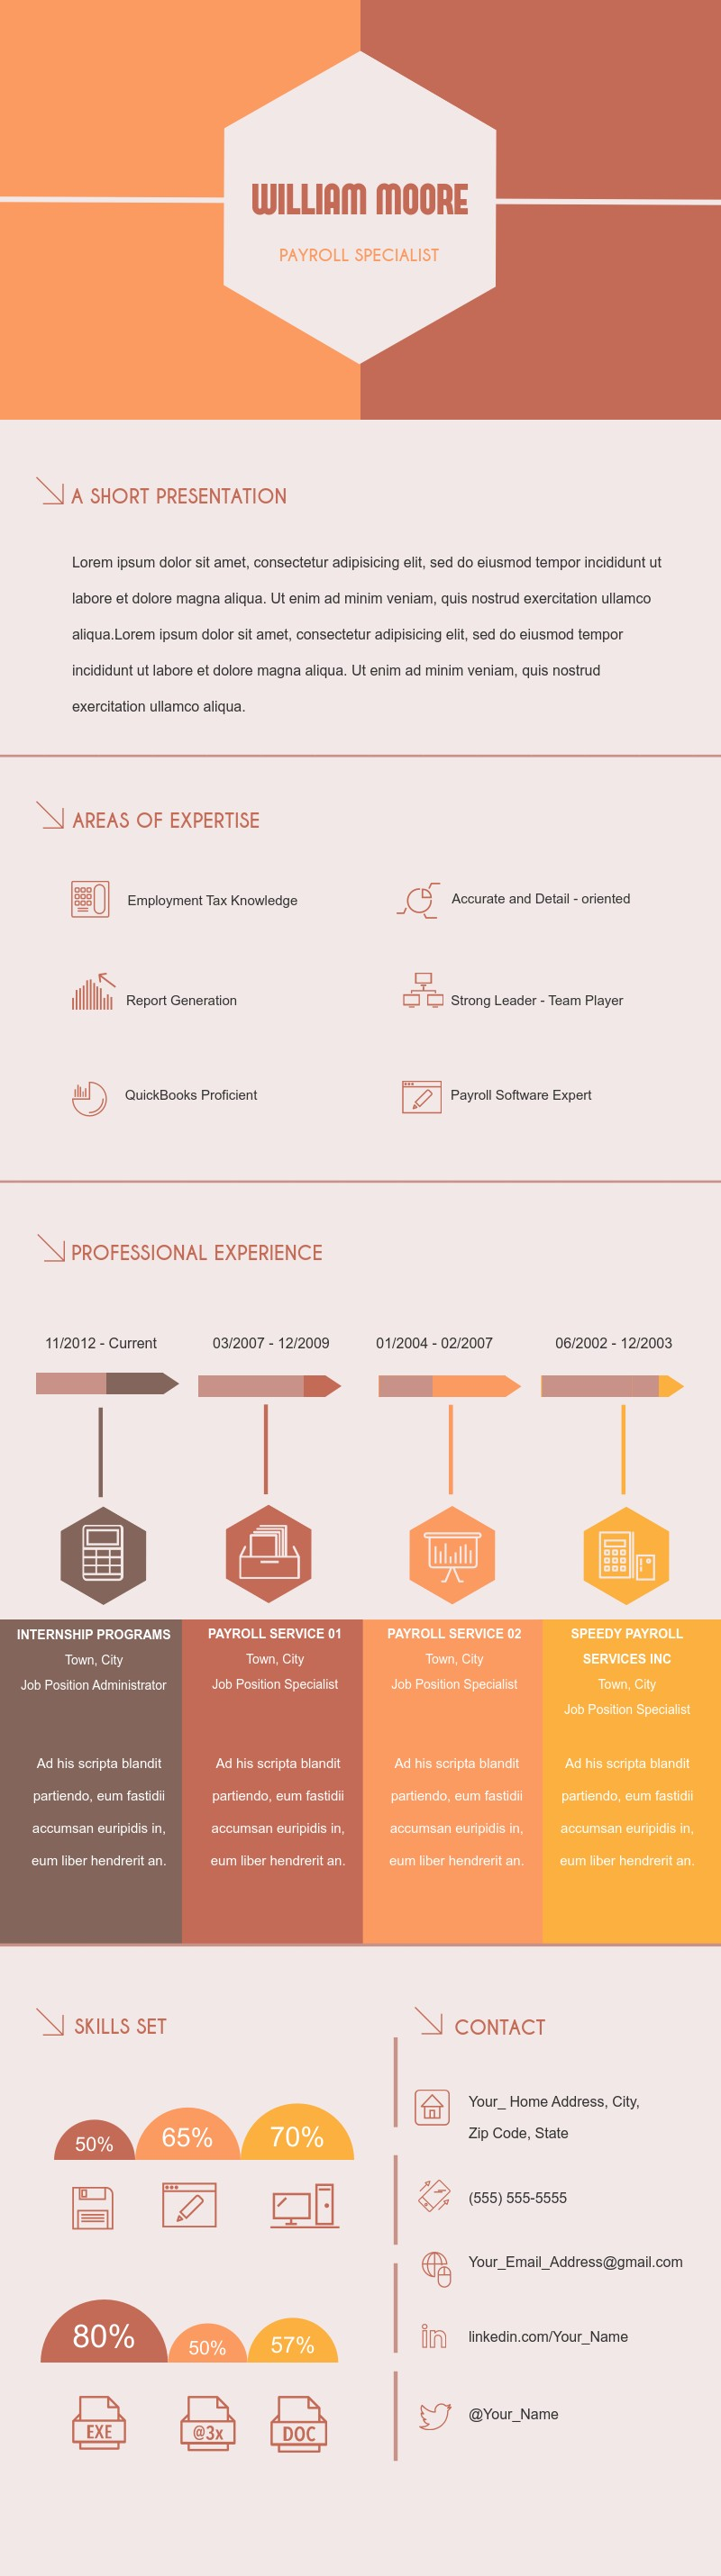 Payroll Specialist Resume (Color) Template